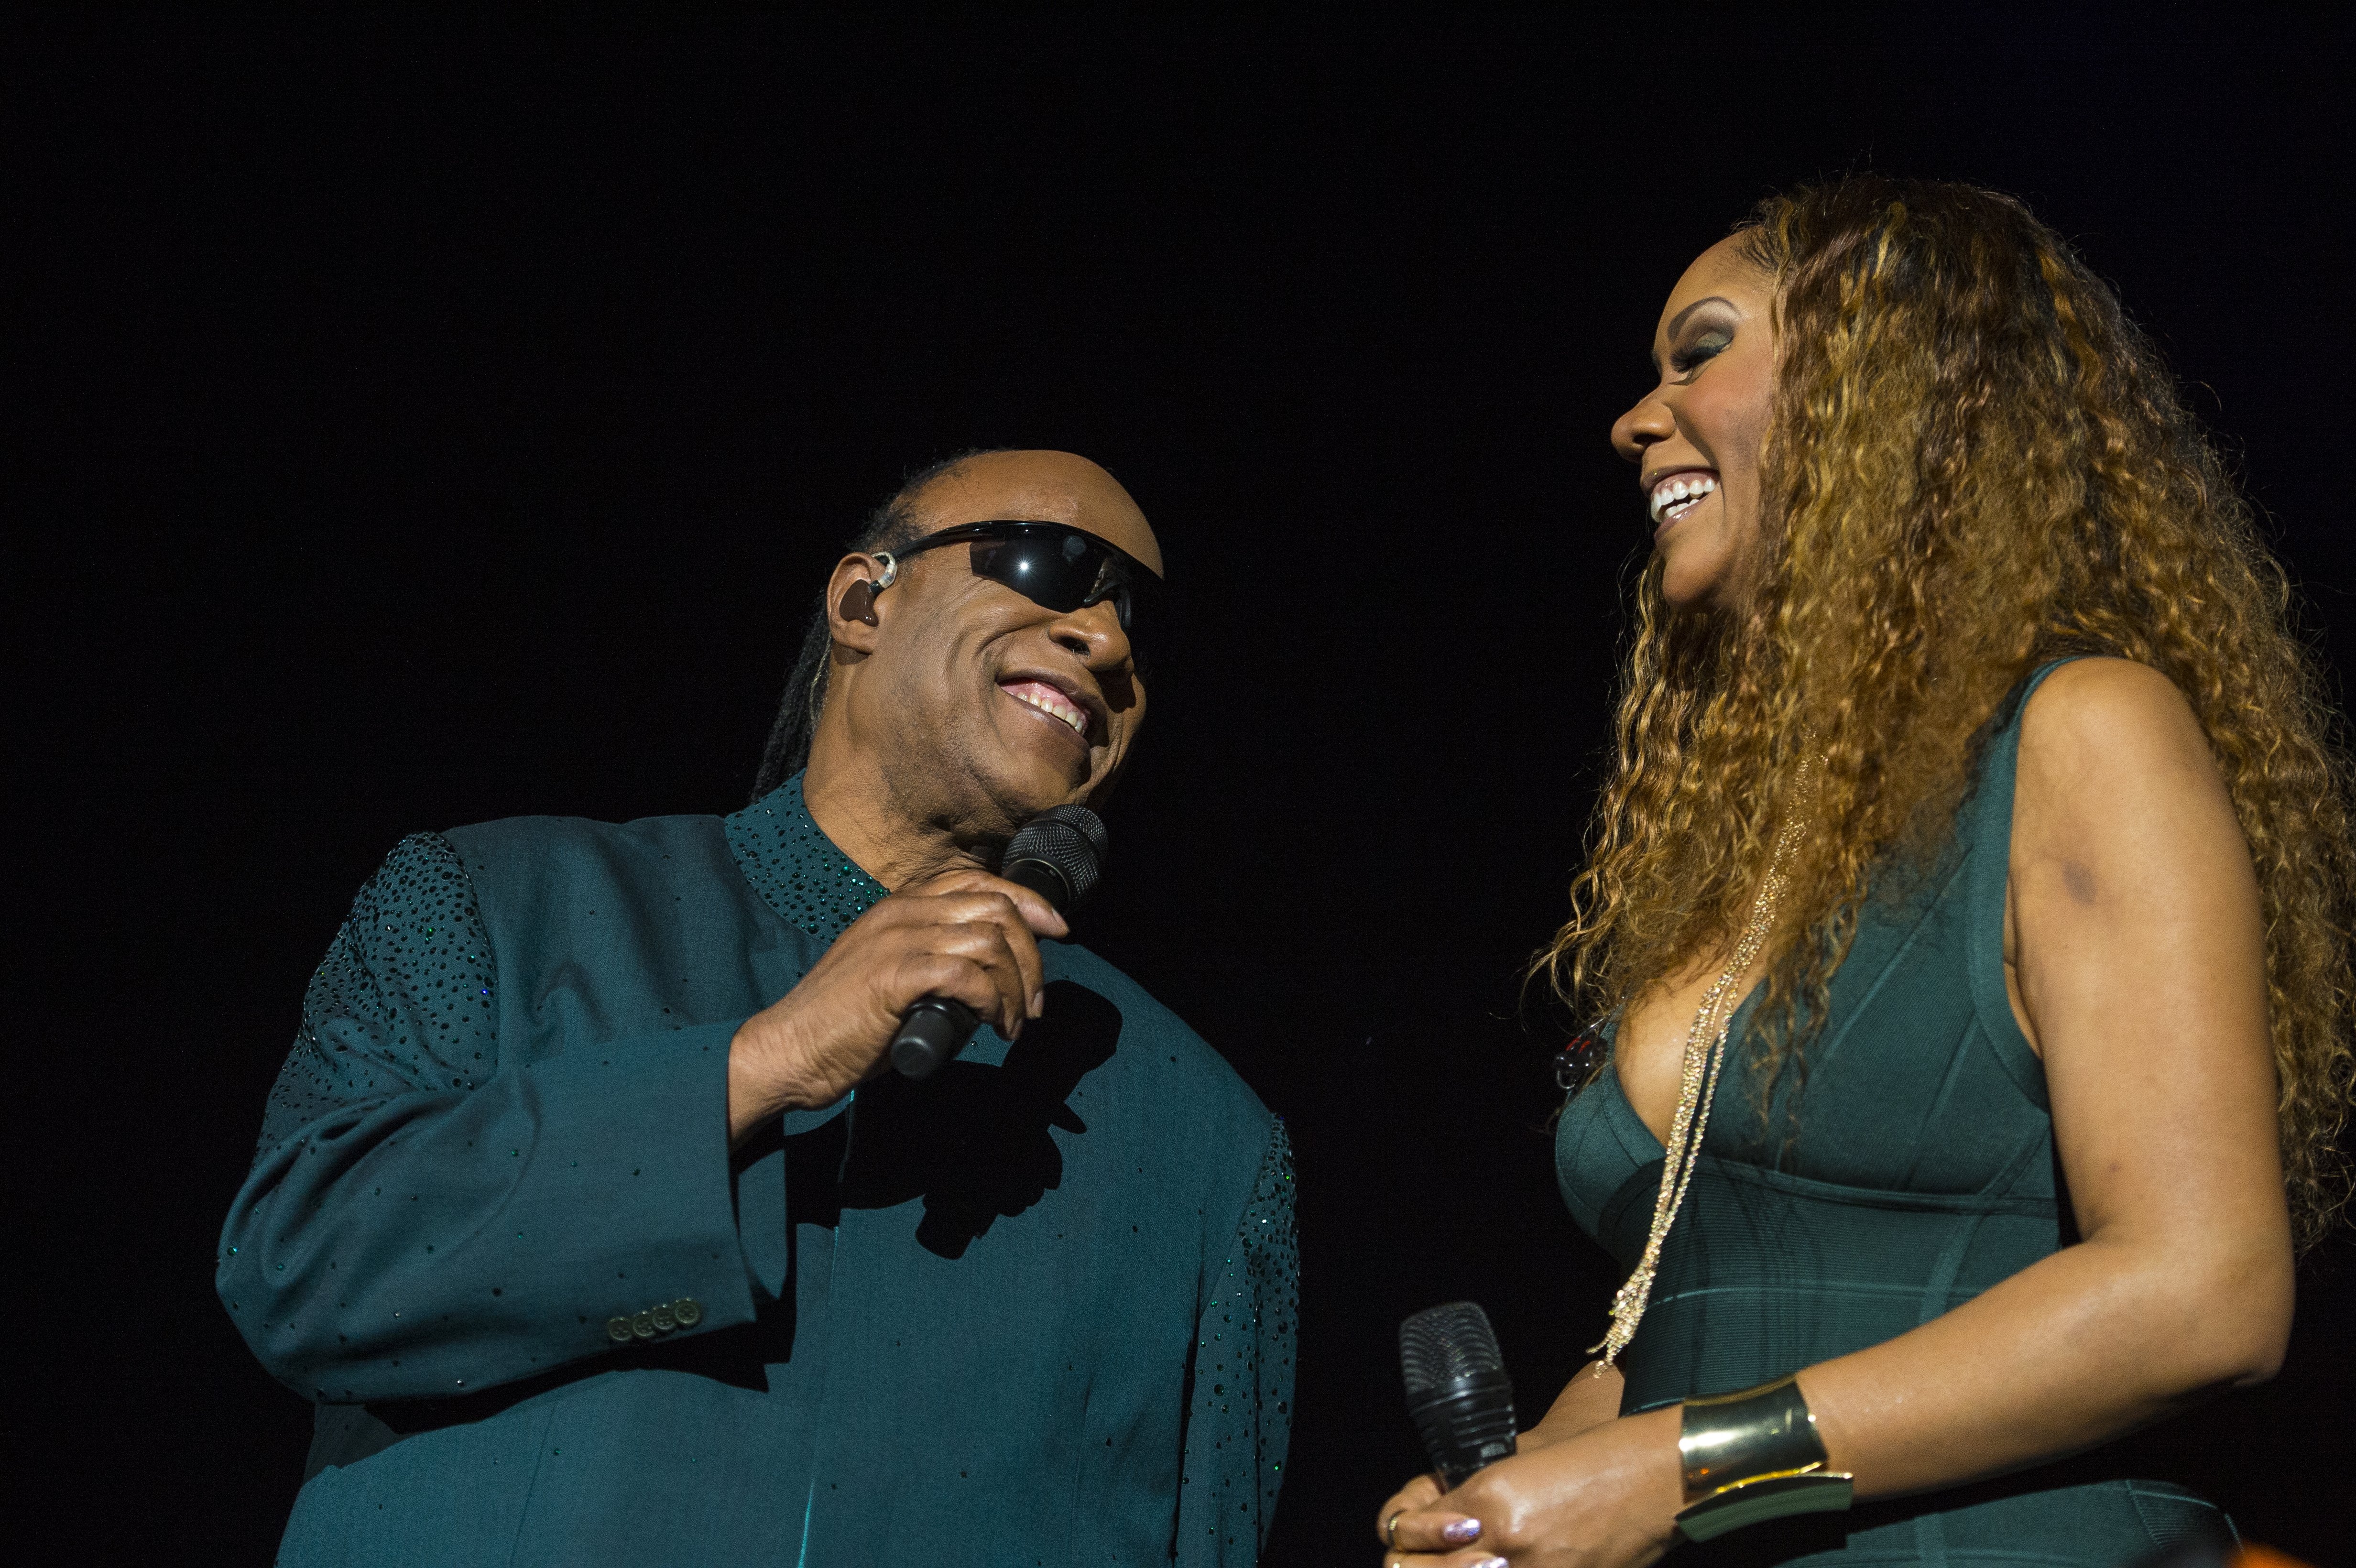 Stevie Wonder with his daughter Aisha Morris at the Pepsi Center on March 17, 2015 | Photo: Getty Images